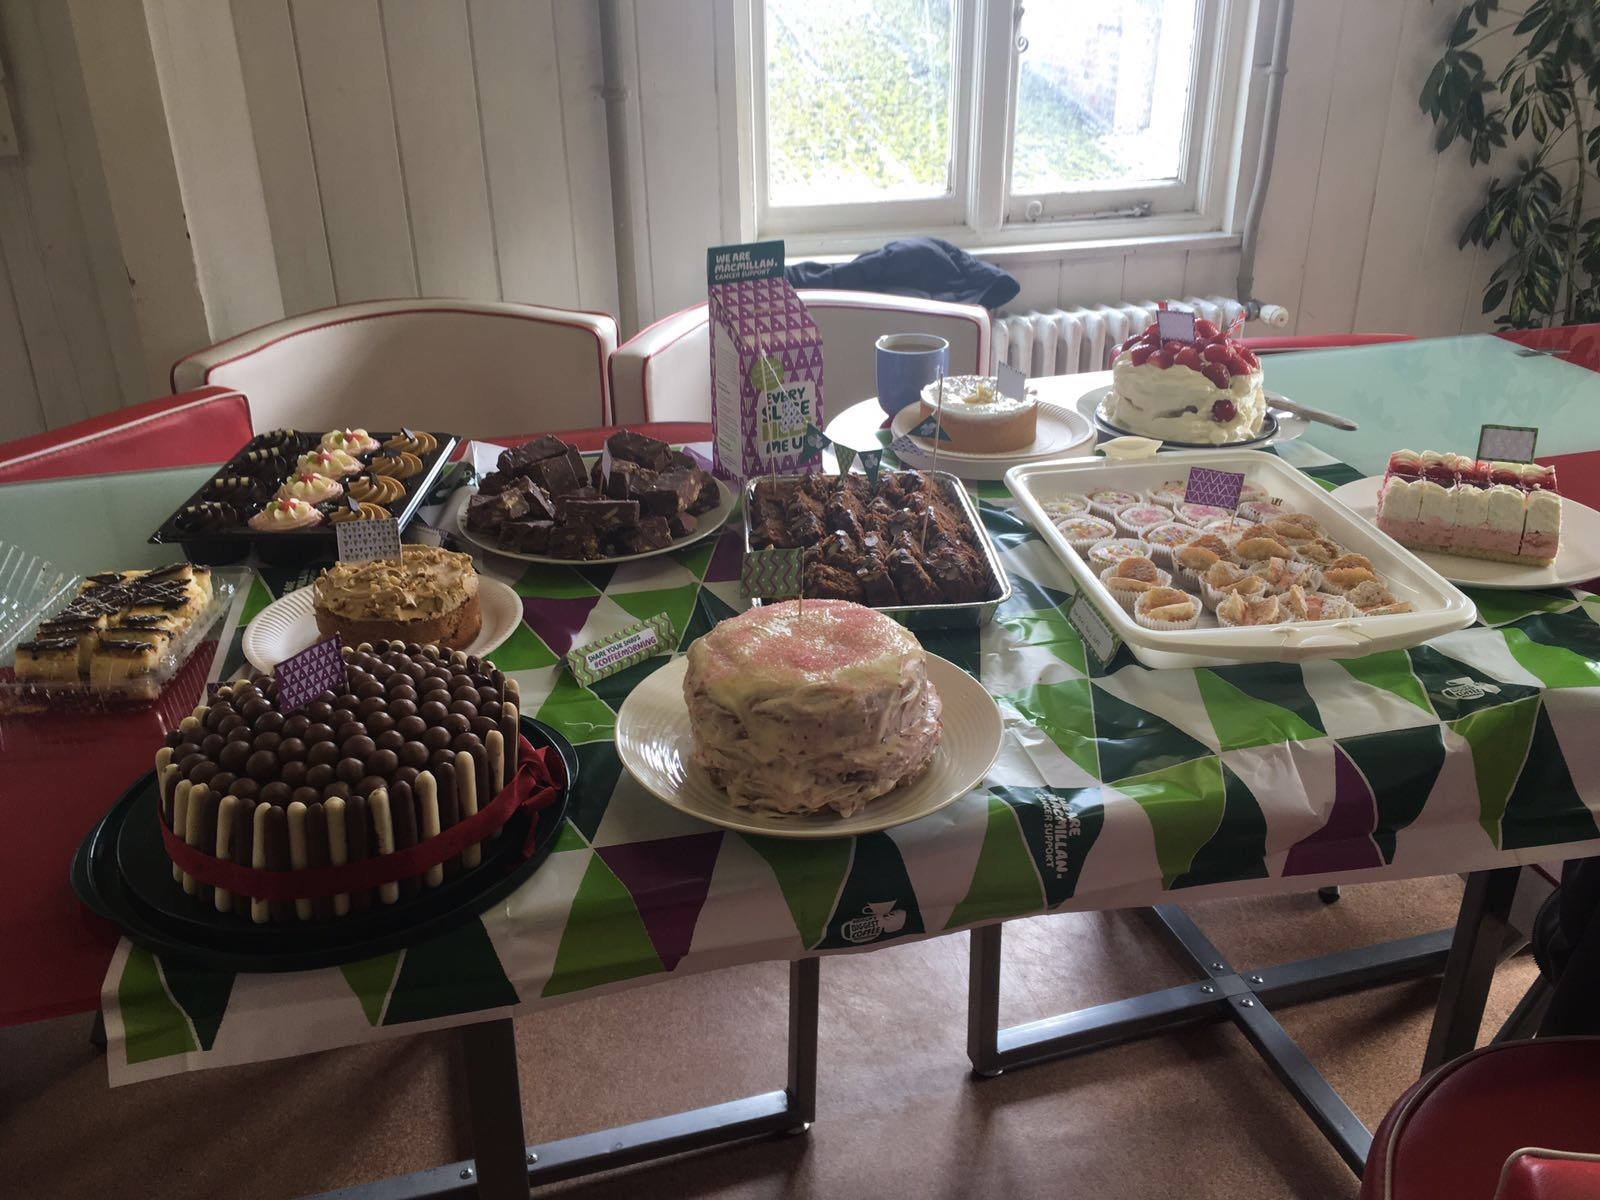 Macmillan Cancer Support Coffee and Cake Morning